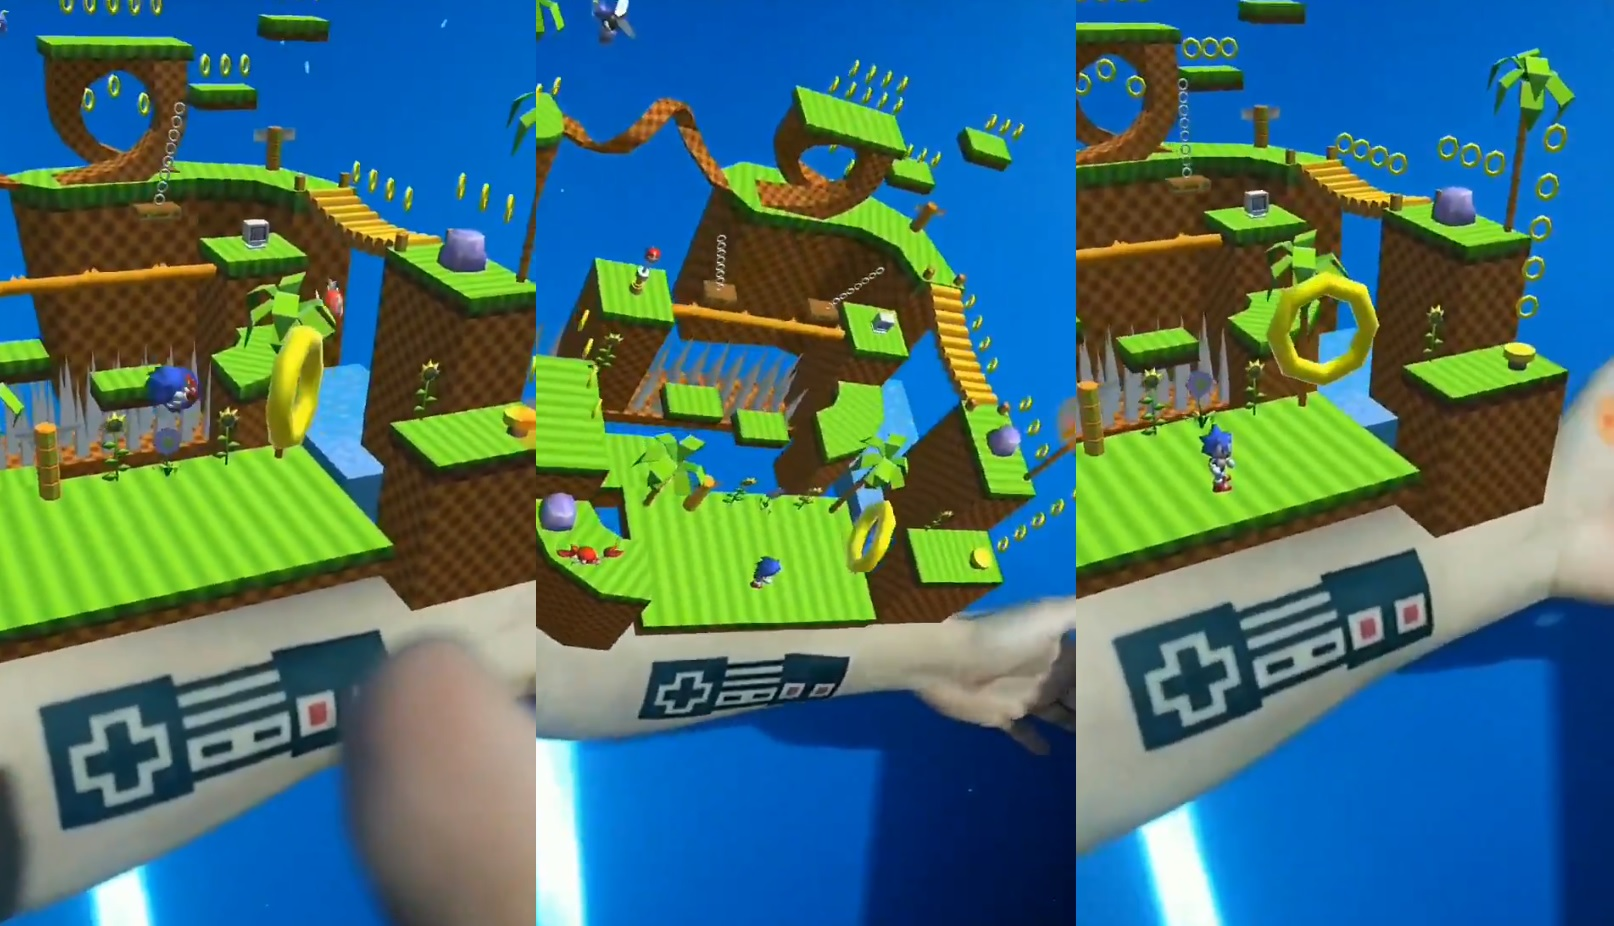 This Amazing Sonic The Hedgehog Ar App Uses An Tattoo As A Controller